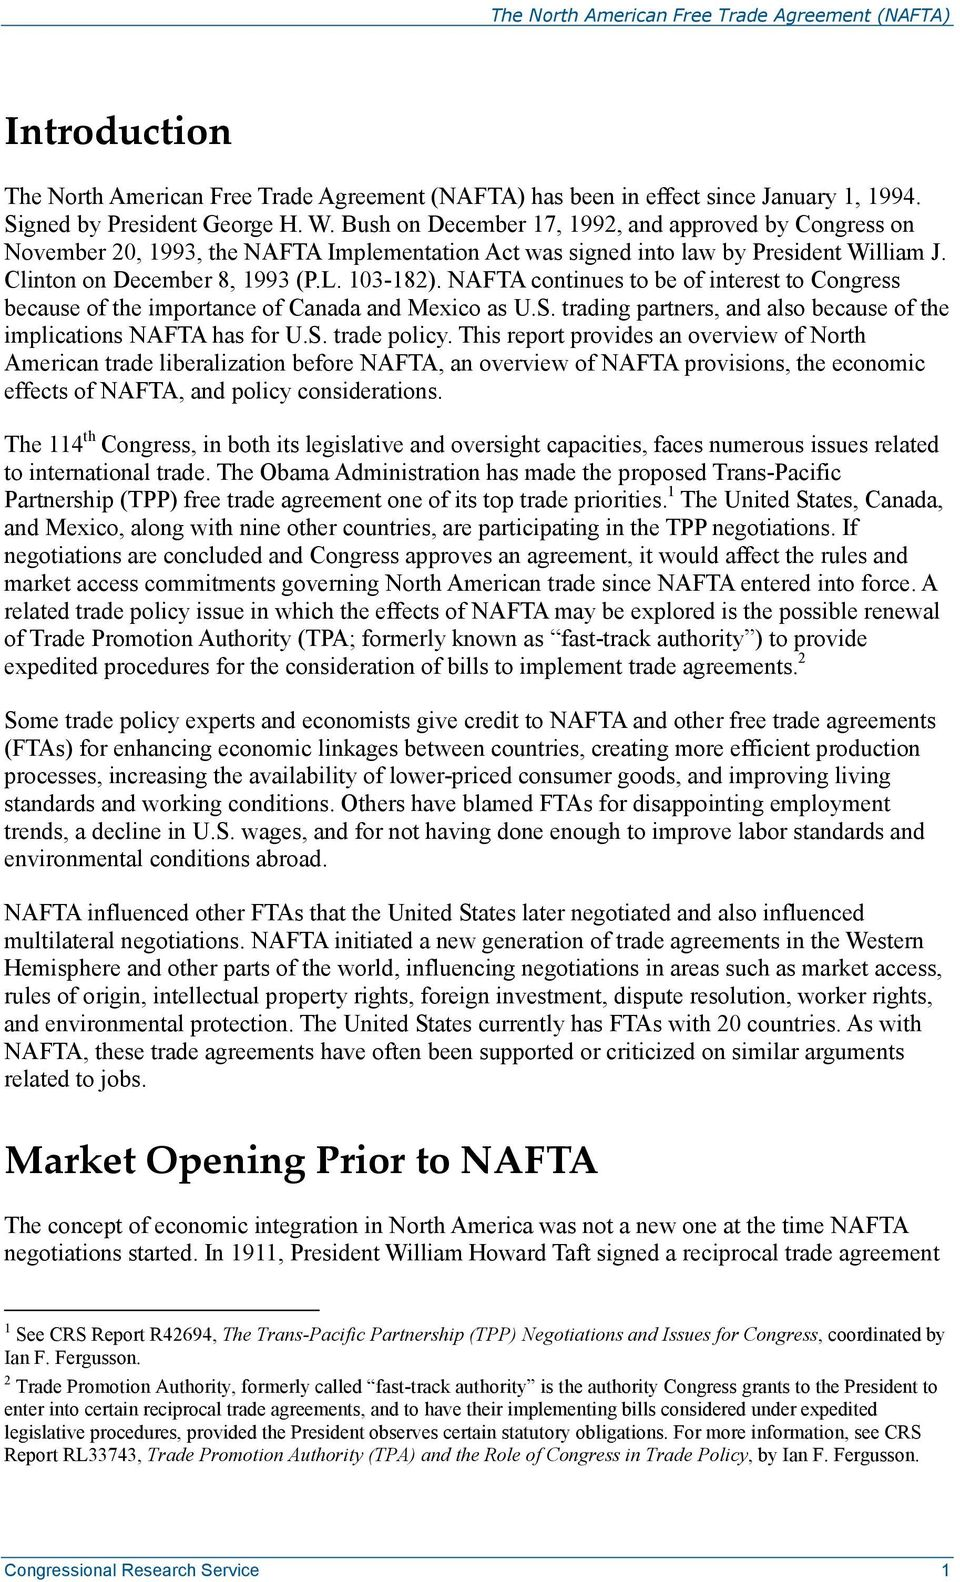 an overview of the north american free trade agreement The north american free trade agreement (nafta) is a trade agreement between the united states, canada and mexico, which came into force on january 1, 1994, creating one of the world's largest.